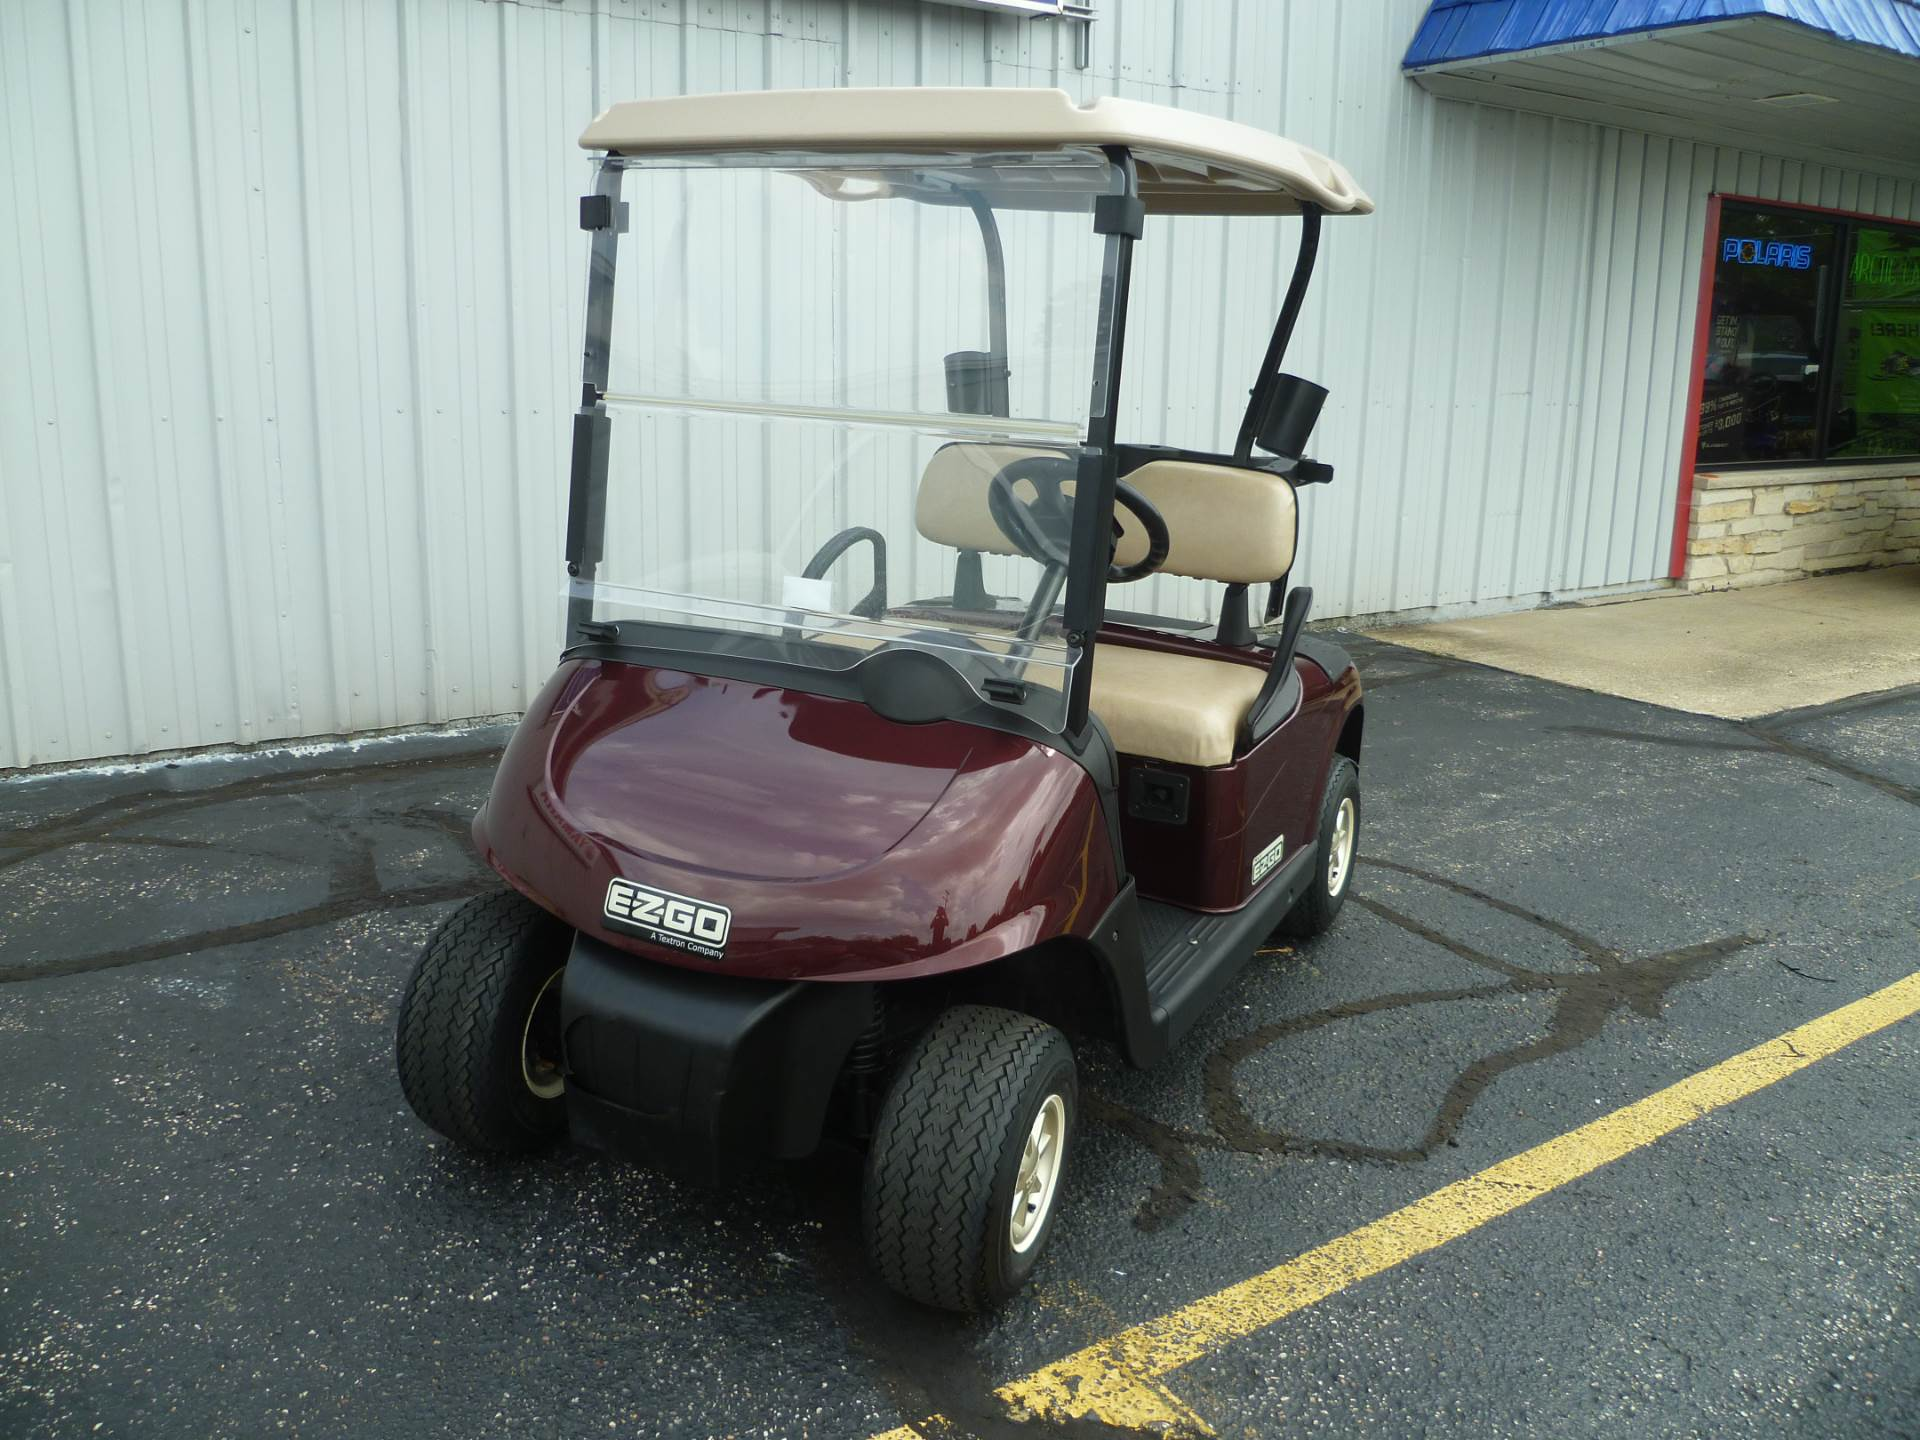 Used 2014 E-Z-Go Freedom RXV Gas Golf Carts in Union Grove, WI ... Ezgo Textron Golf Cart Models Different on rims golf cart, 3 wheel ez go golf cart, bad boy buggies golf cart, best 3 wheel golf cart, 2004 electric golf cart, charging an electric golf cart, textron ez golf cart, ford golf cart, best gas powered golf cart, ezgo golf carts maintenance, 1990 yamaha golf cart, rolls royce golf cart, camaro golf cart, electric utility golf cart, western elegant golf cart,